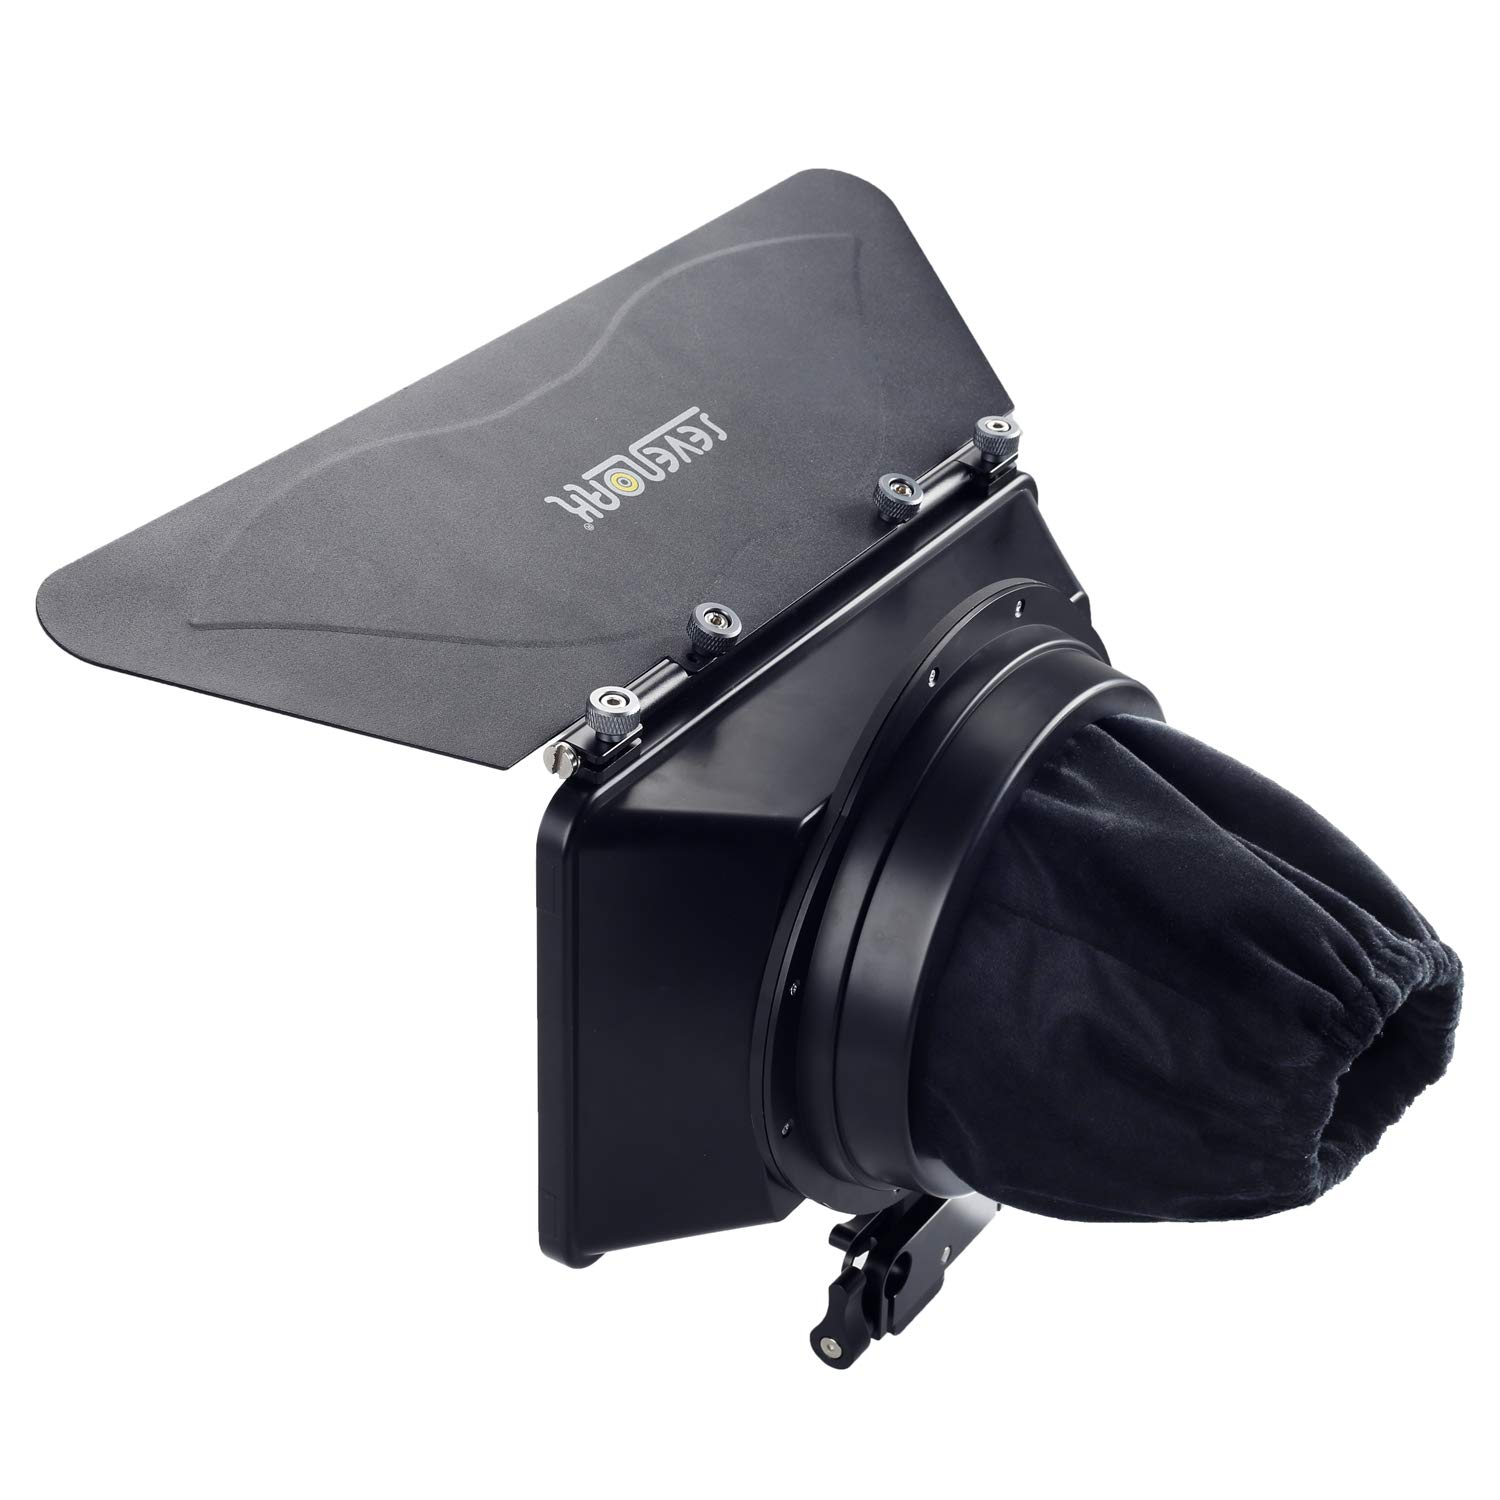 Sevenoak SK-MB1 Lightweight Matte Box with French Flag & Universal Anti-Reflection Donut (for 15mm Rod System) for DSLR BlackMagic Pocket Cinema Panasonic GH4 Camcorders Micro Film Making System